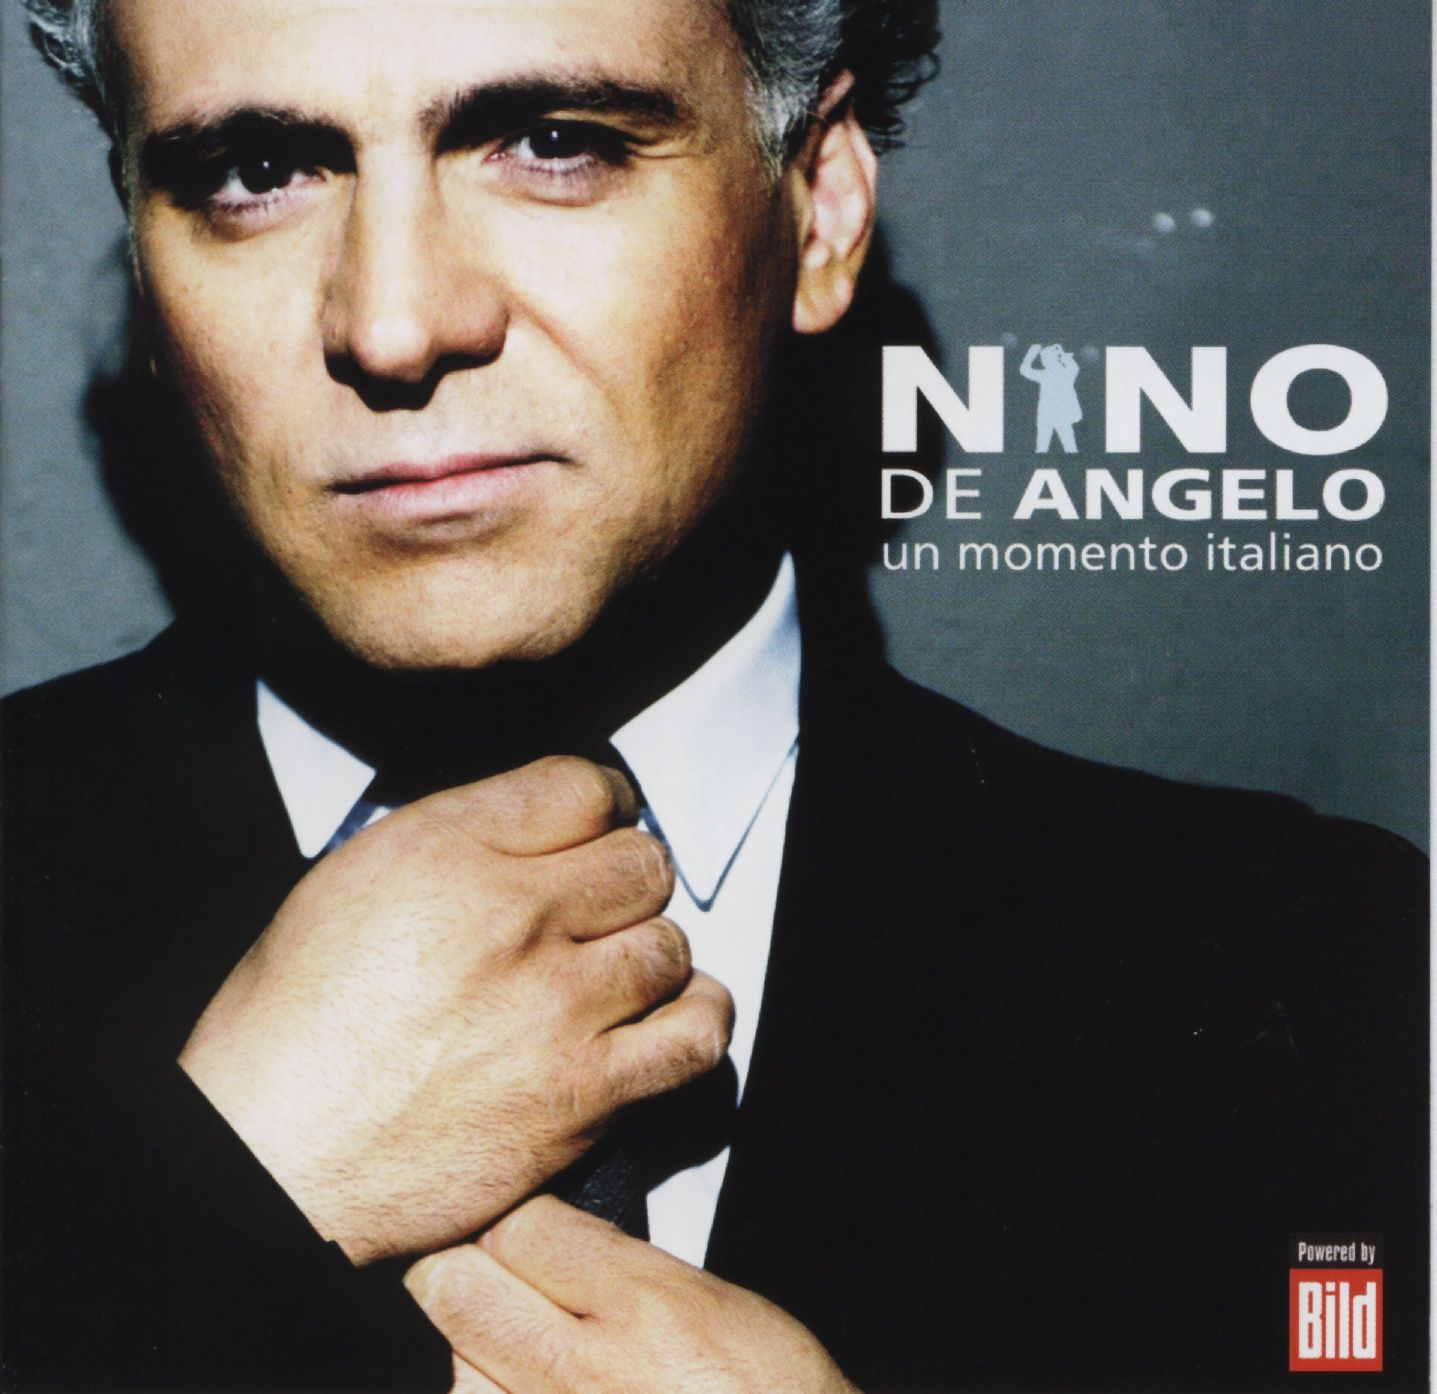 Nino D'angelo - Un Momento Italiano album cover